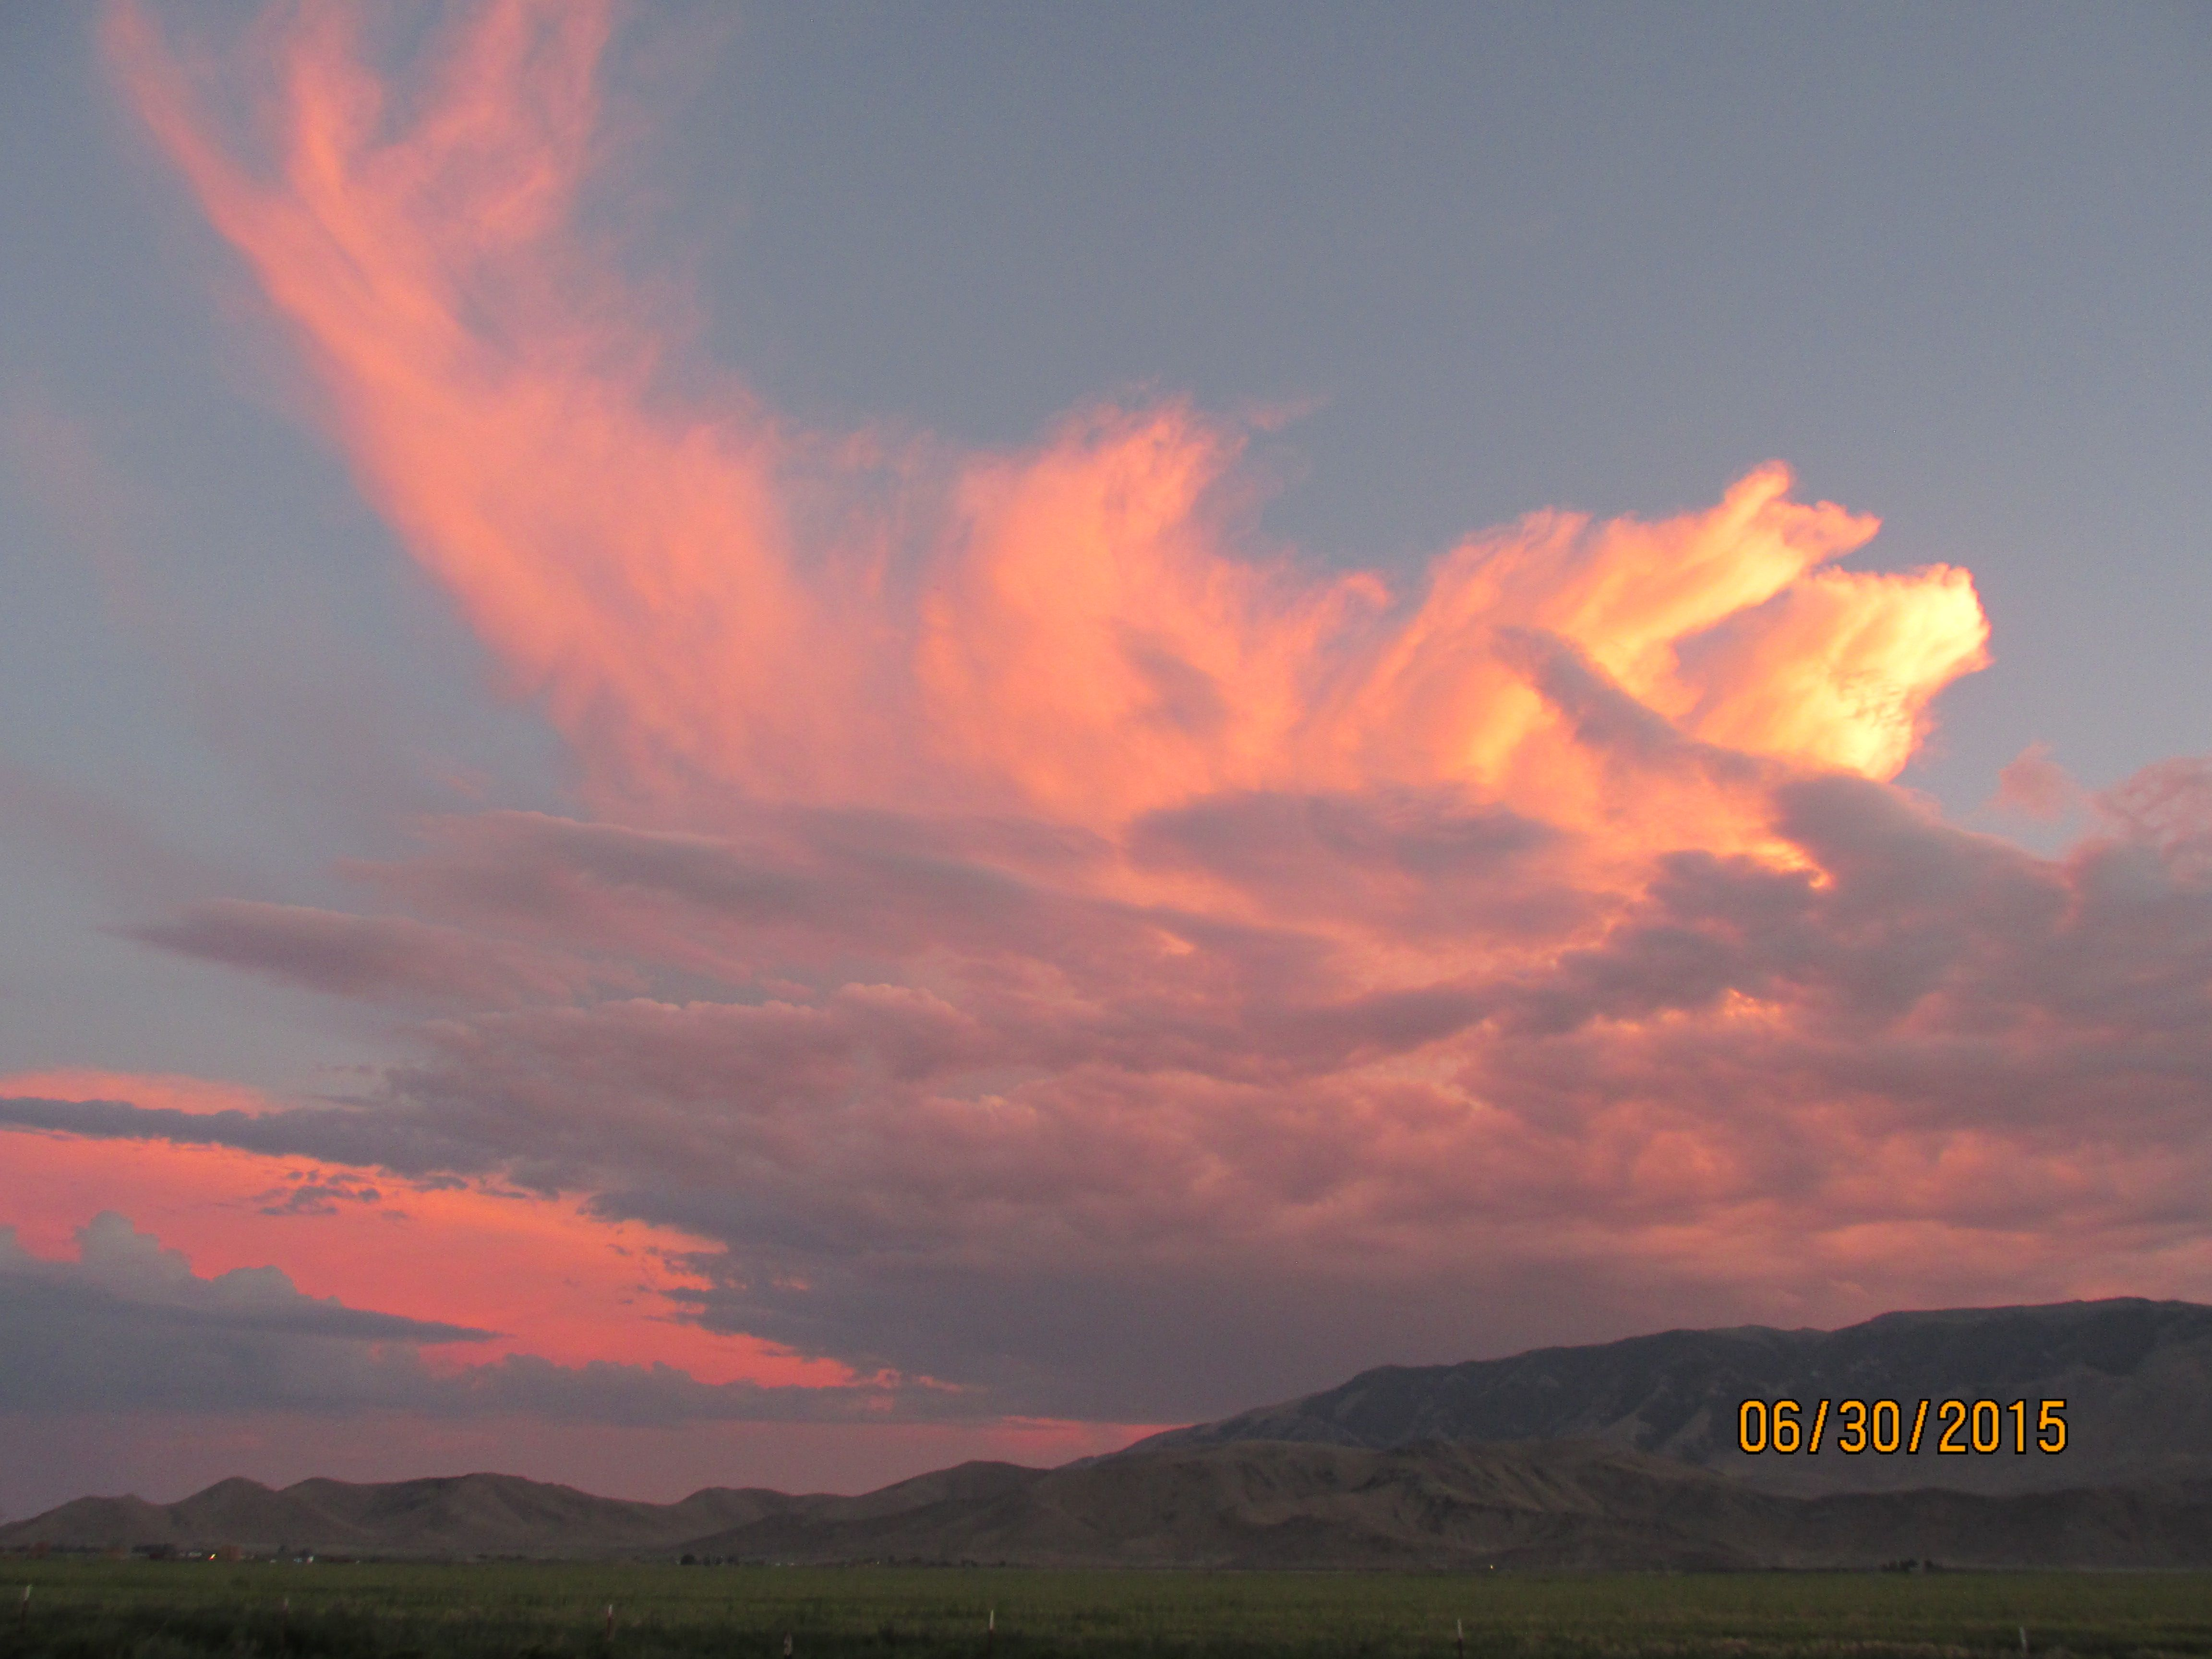 Sunset in Howe, Idaho. Just past the hills is Arco, Idaho